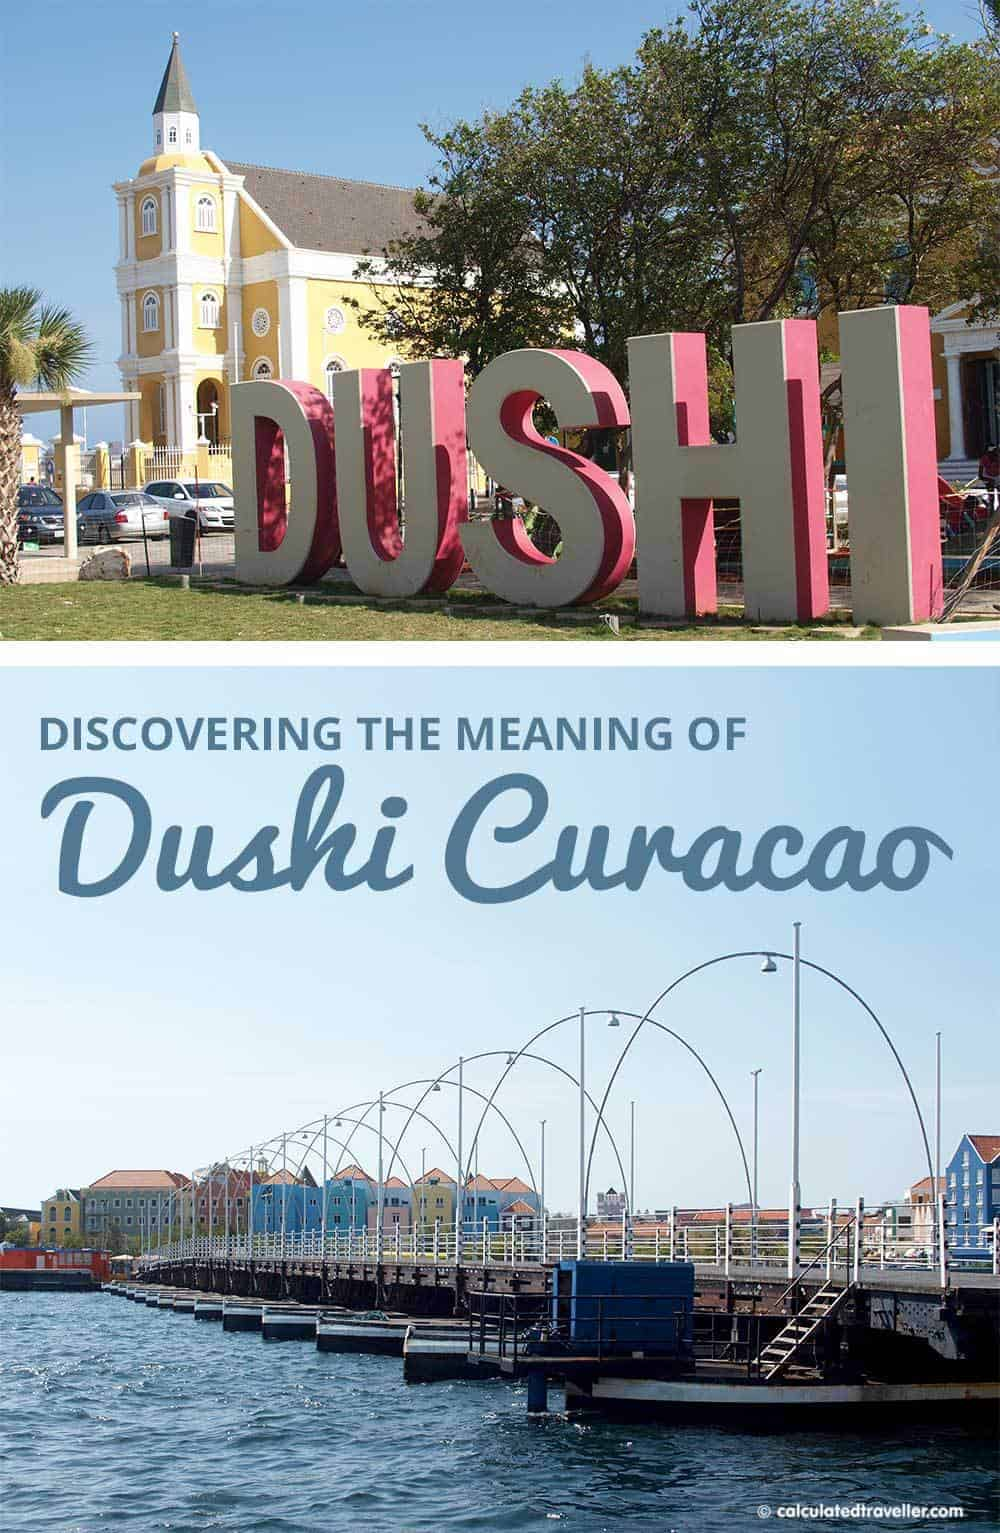 Discovering the meaning of Dushi Curacao